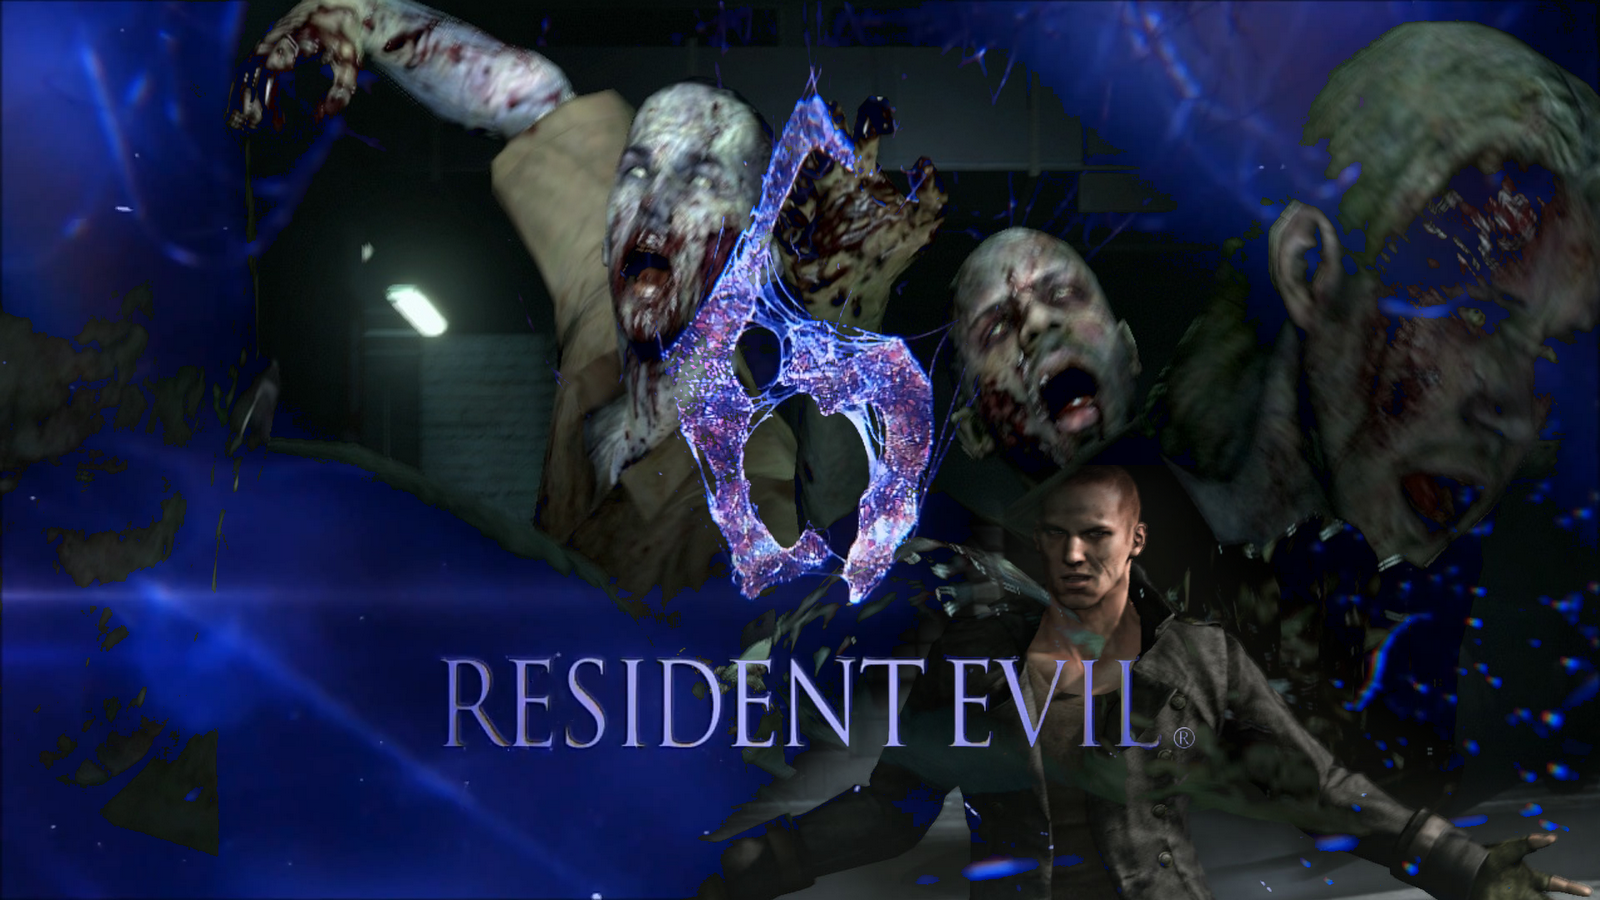 article Games HD Wallpaper with the title Resident Evil 6 Wallpapers 1600x900